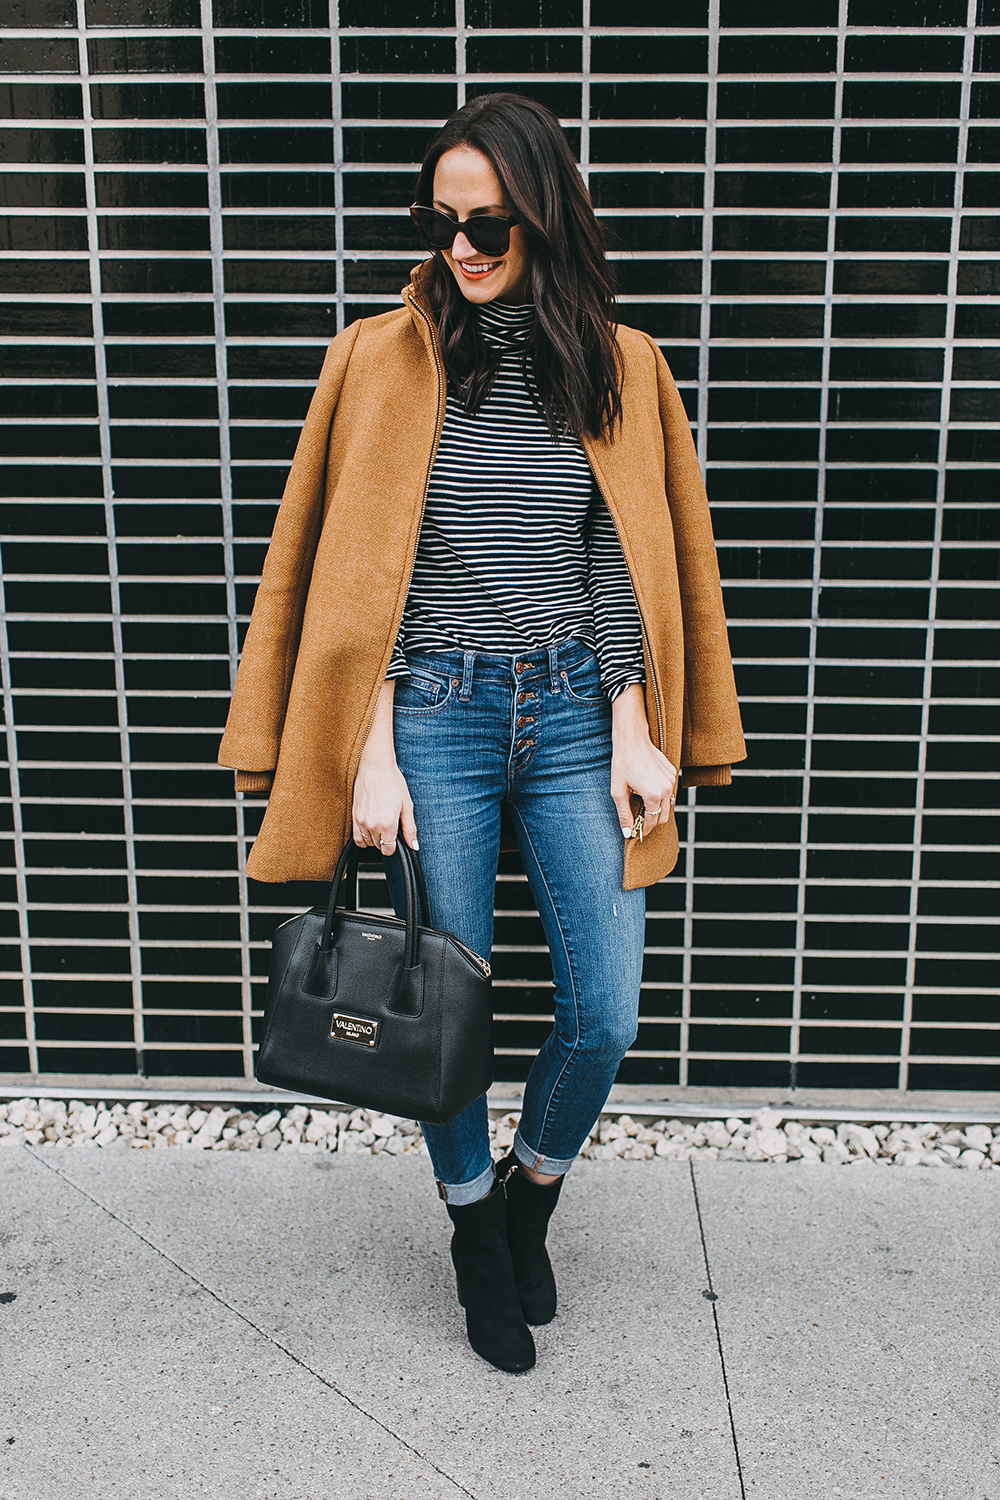 livvyland-blog-olivia-watson-austin-texas-fashion-blogger-j-crew-camel-winter-coat-striped-turtleneck-mid-calf-ankle-booties-1